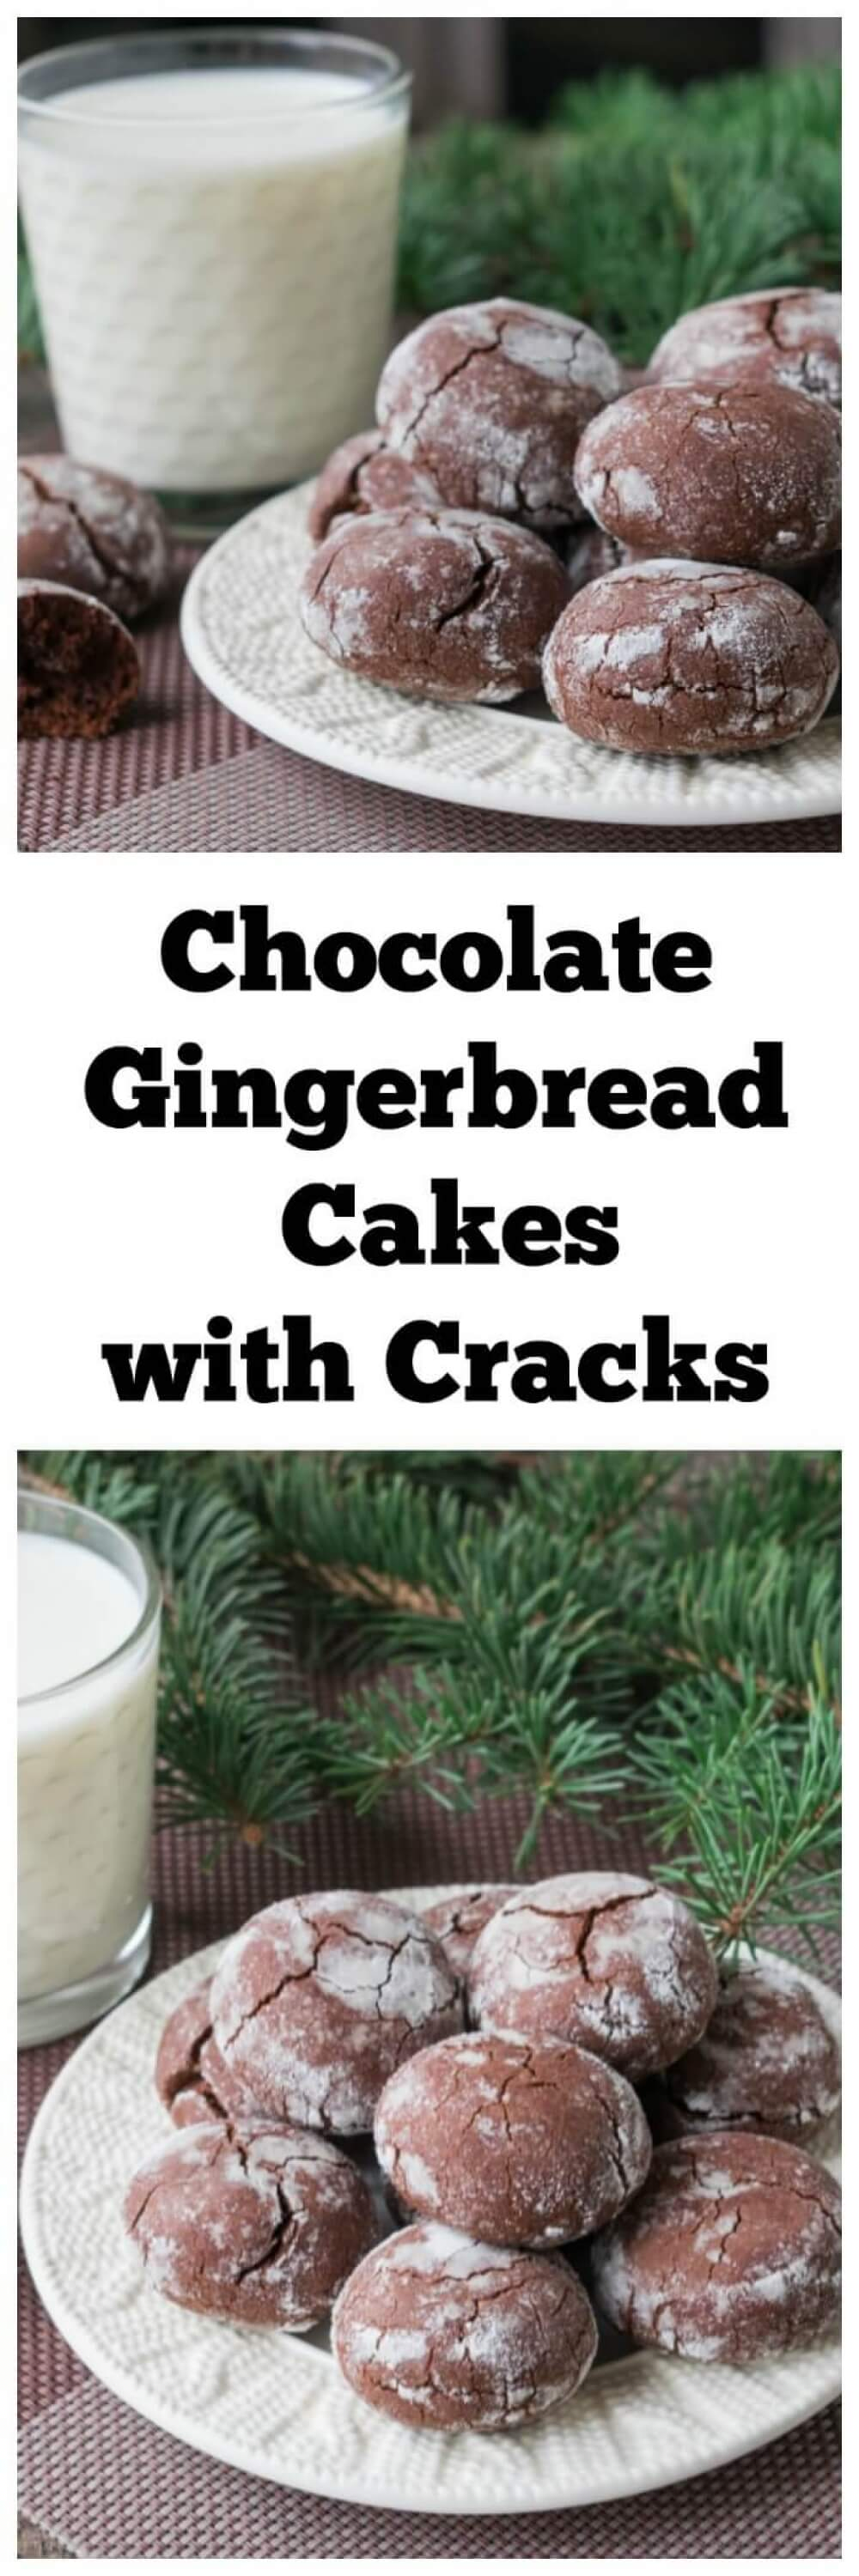 Chocolate Gingerbread Cakes with Cracks